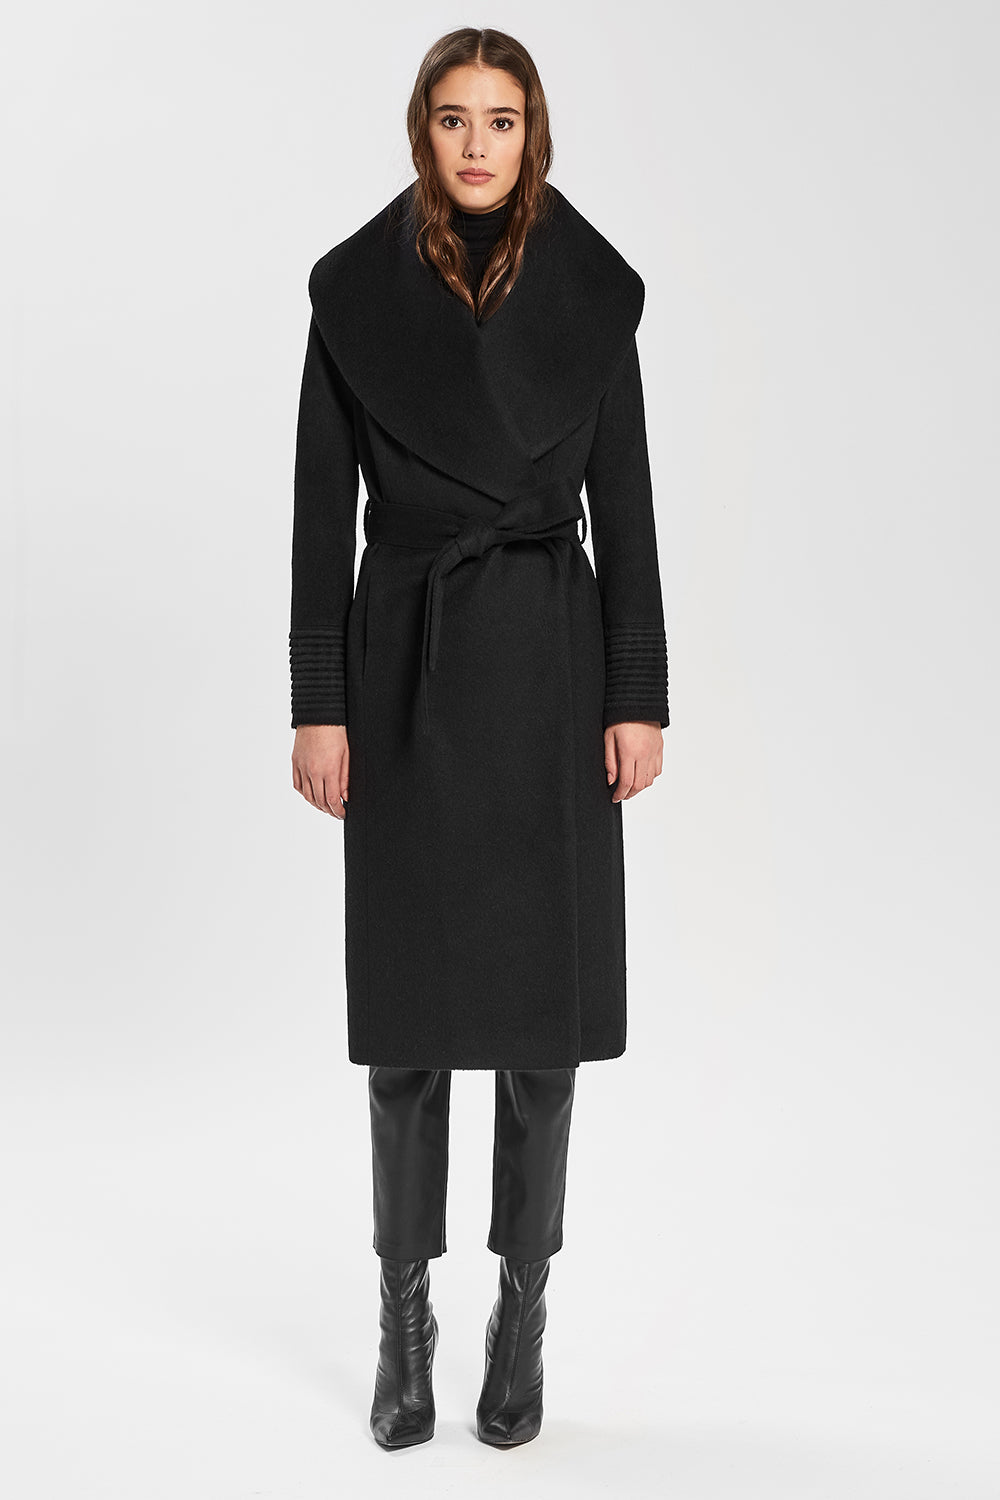 Sentaler Long Wide Shawl Collar Wrap Coat featured in Baby Alpaca and available in Black. Seen from front.